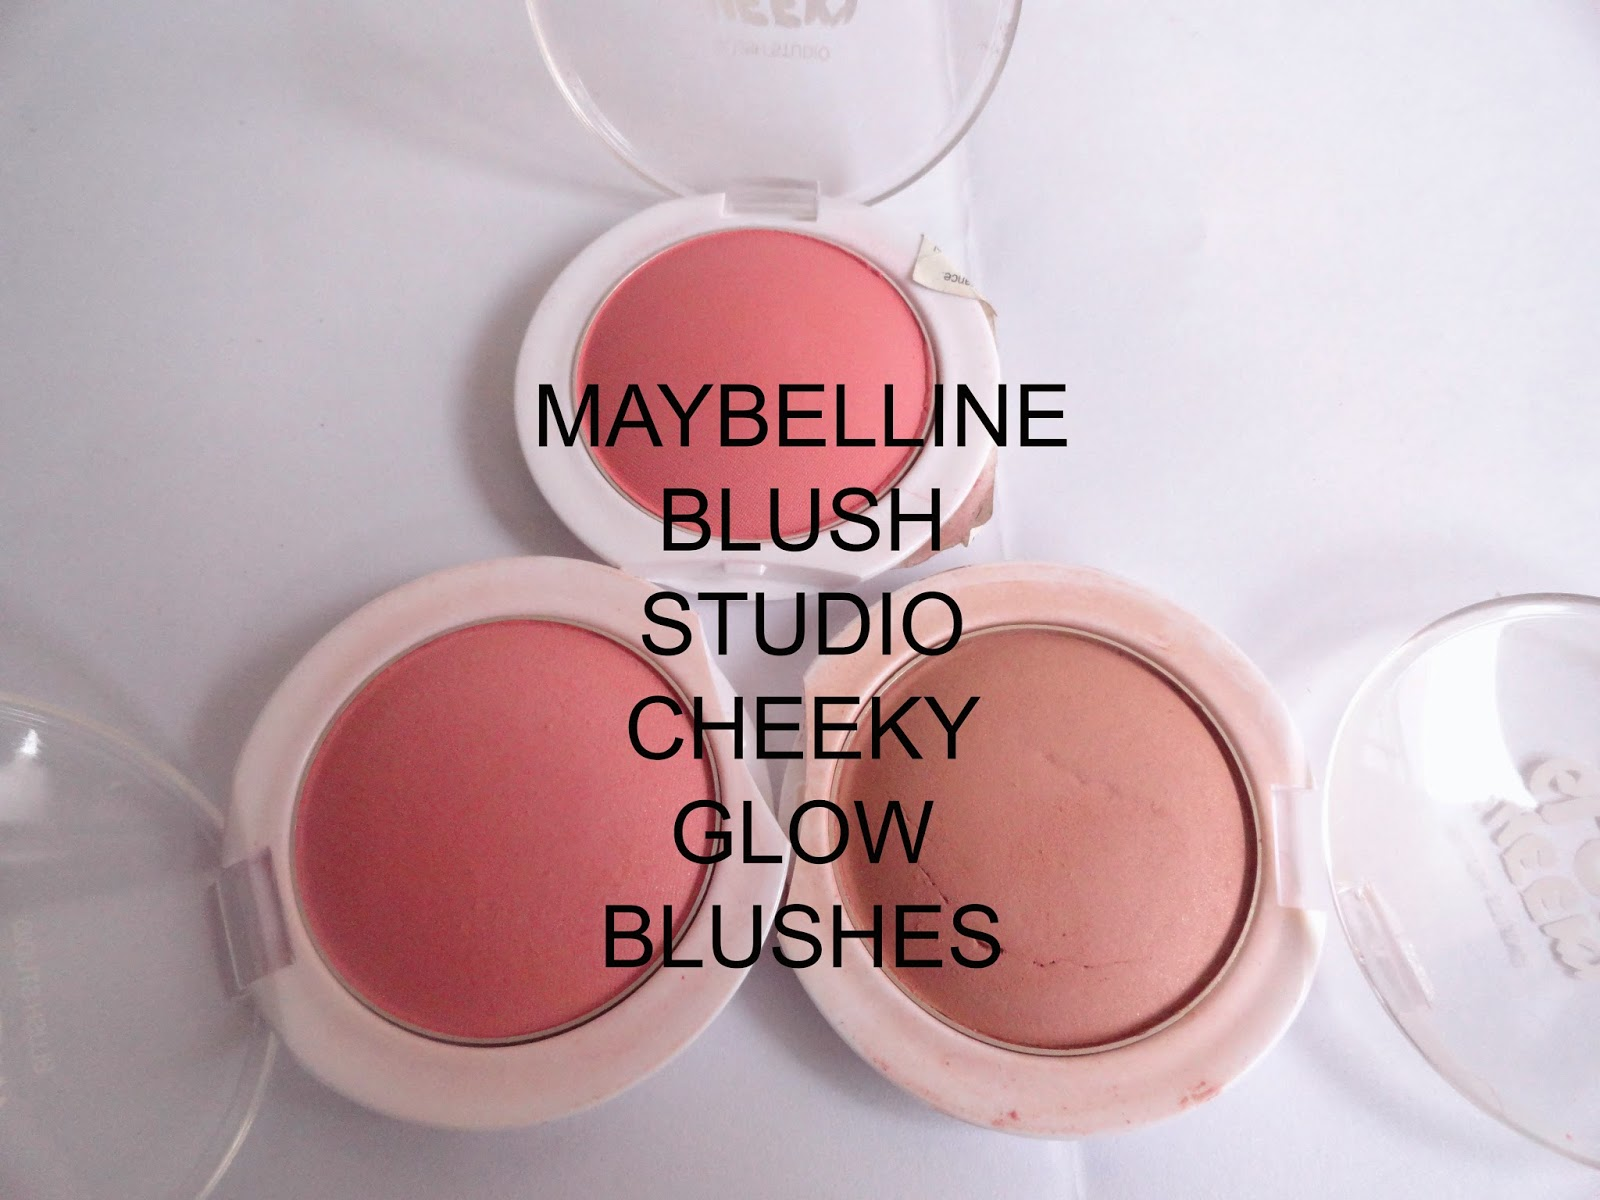 The Complete Set: Maybelline Blush Studio Cheeky Glow Blushes image